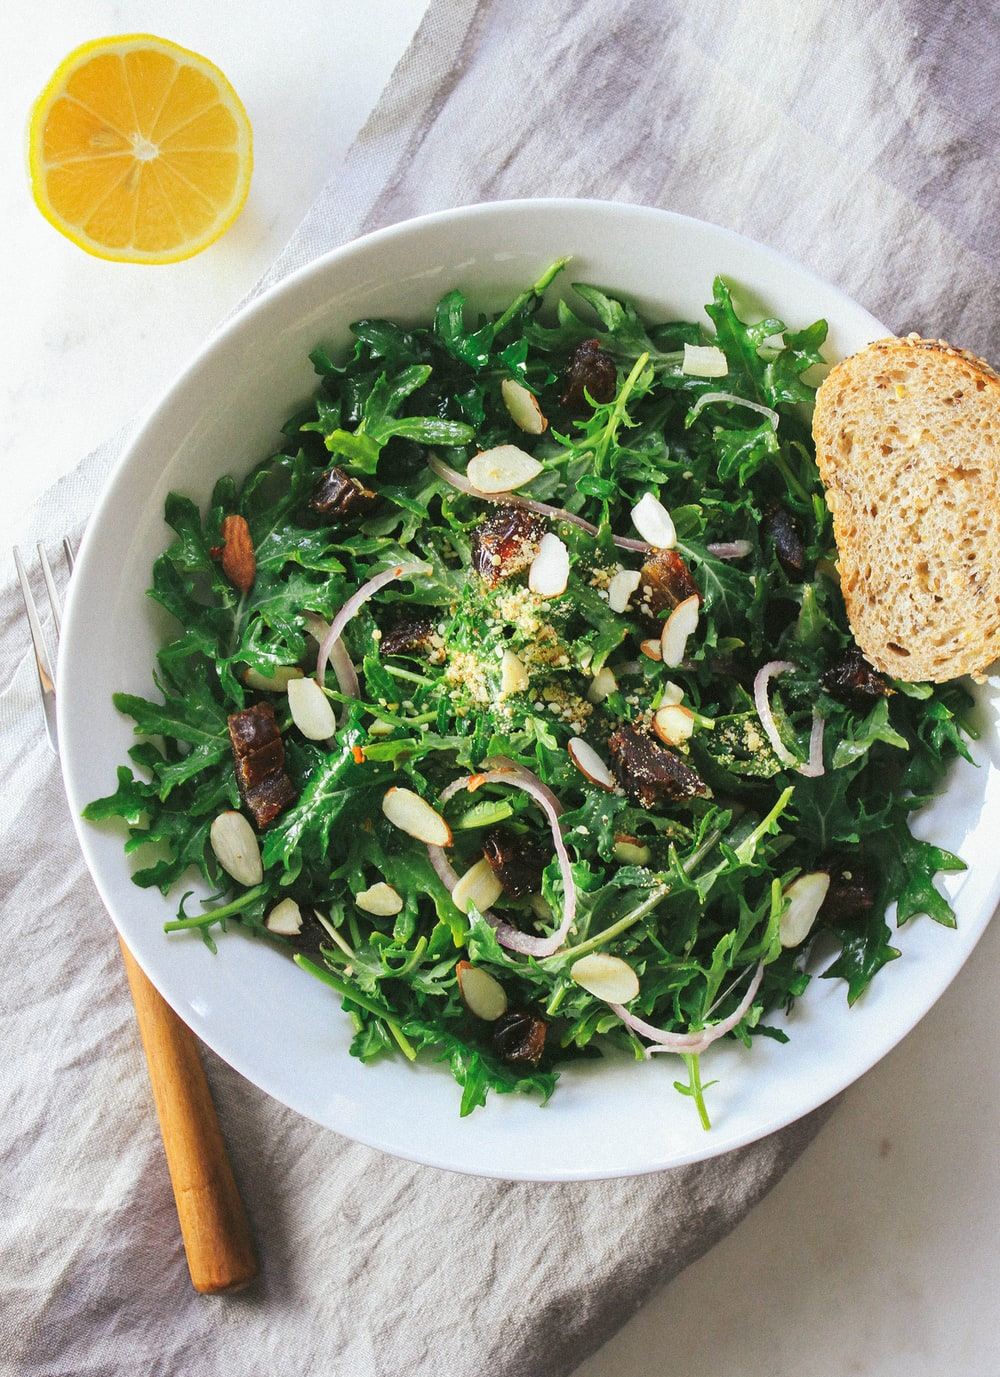 KALE, DATE & ALMOND SALAD + LEMON DRESSING